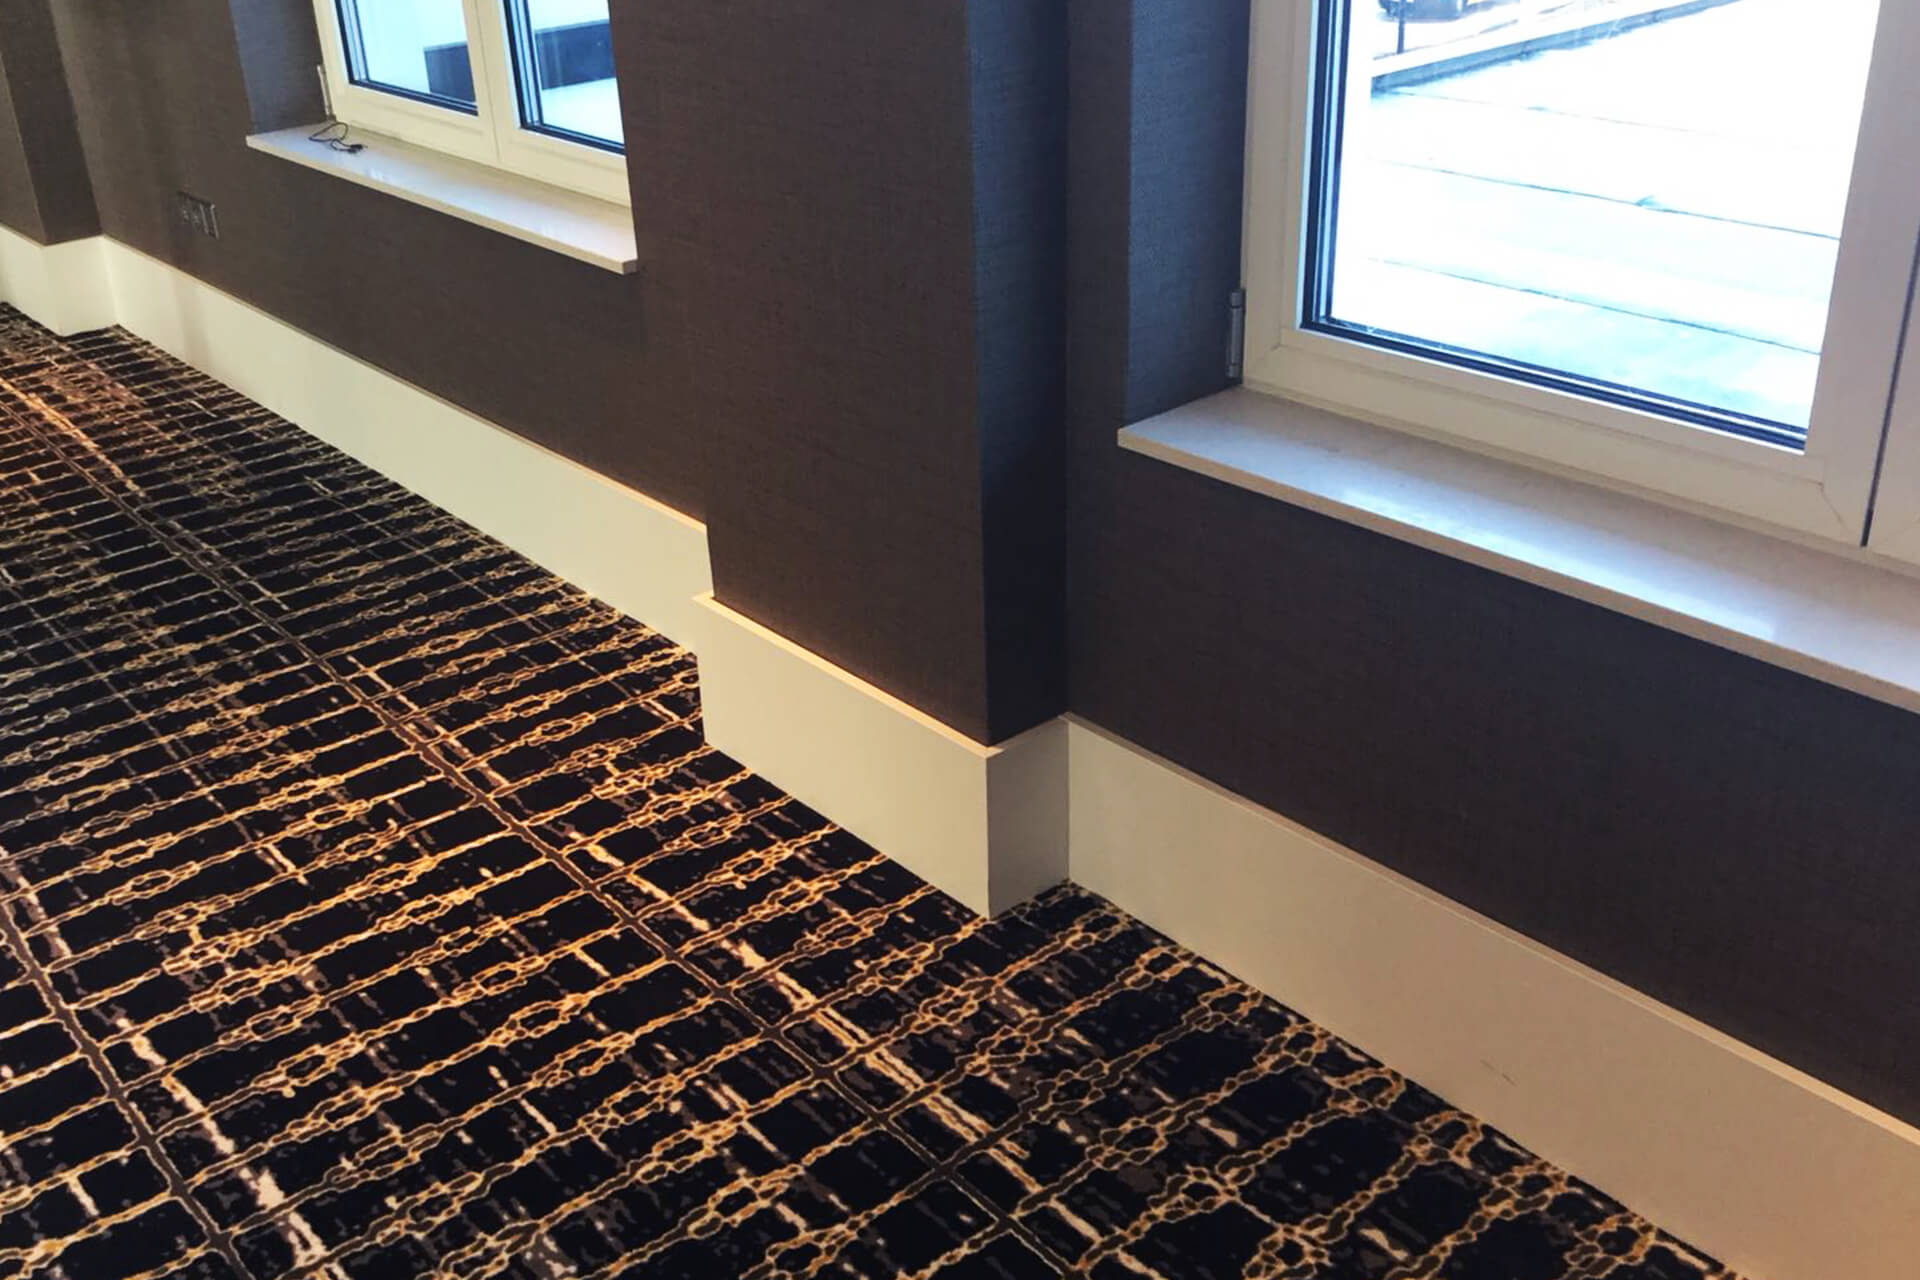 Skirting boards in a hotel sheathed with plastic